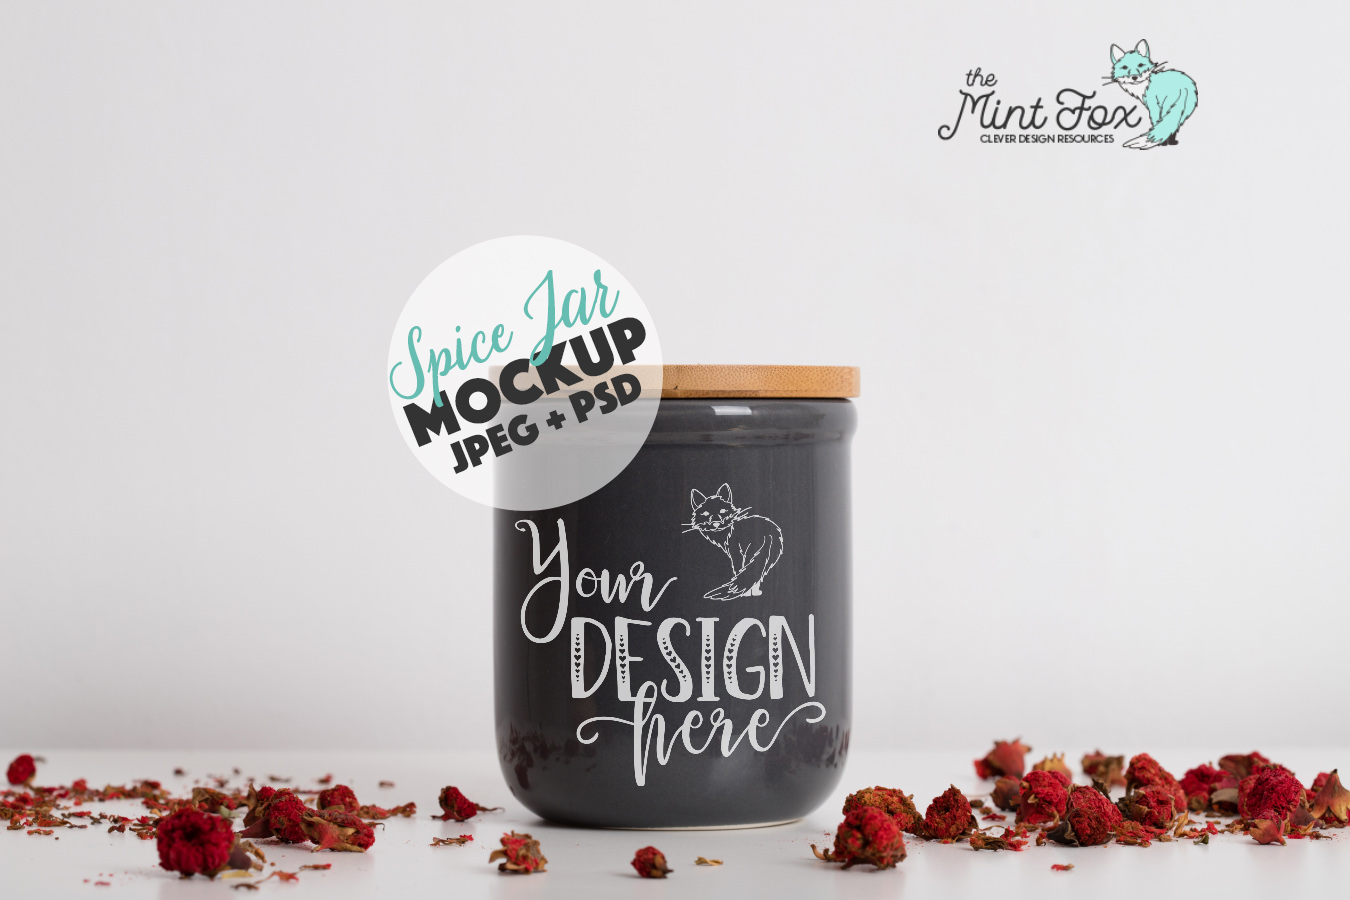 Spice Jar Mockup with Pomegranate Flowers | PSD & JPG Mockup example image 1